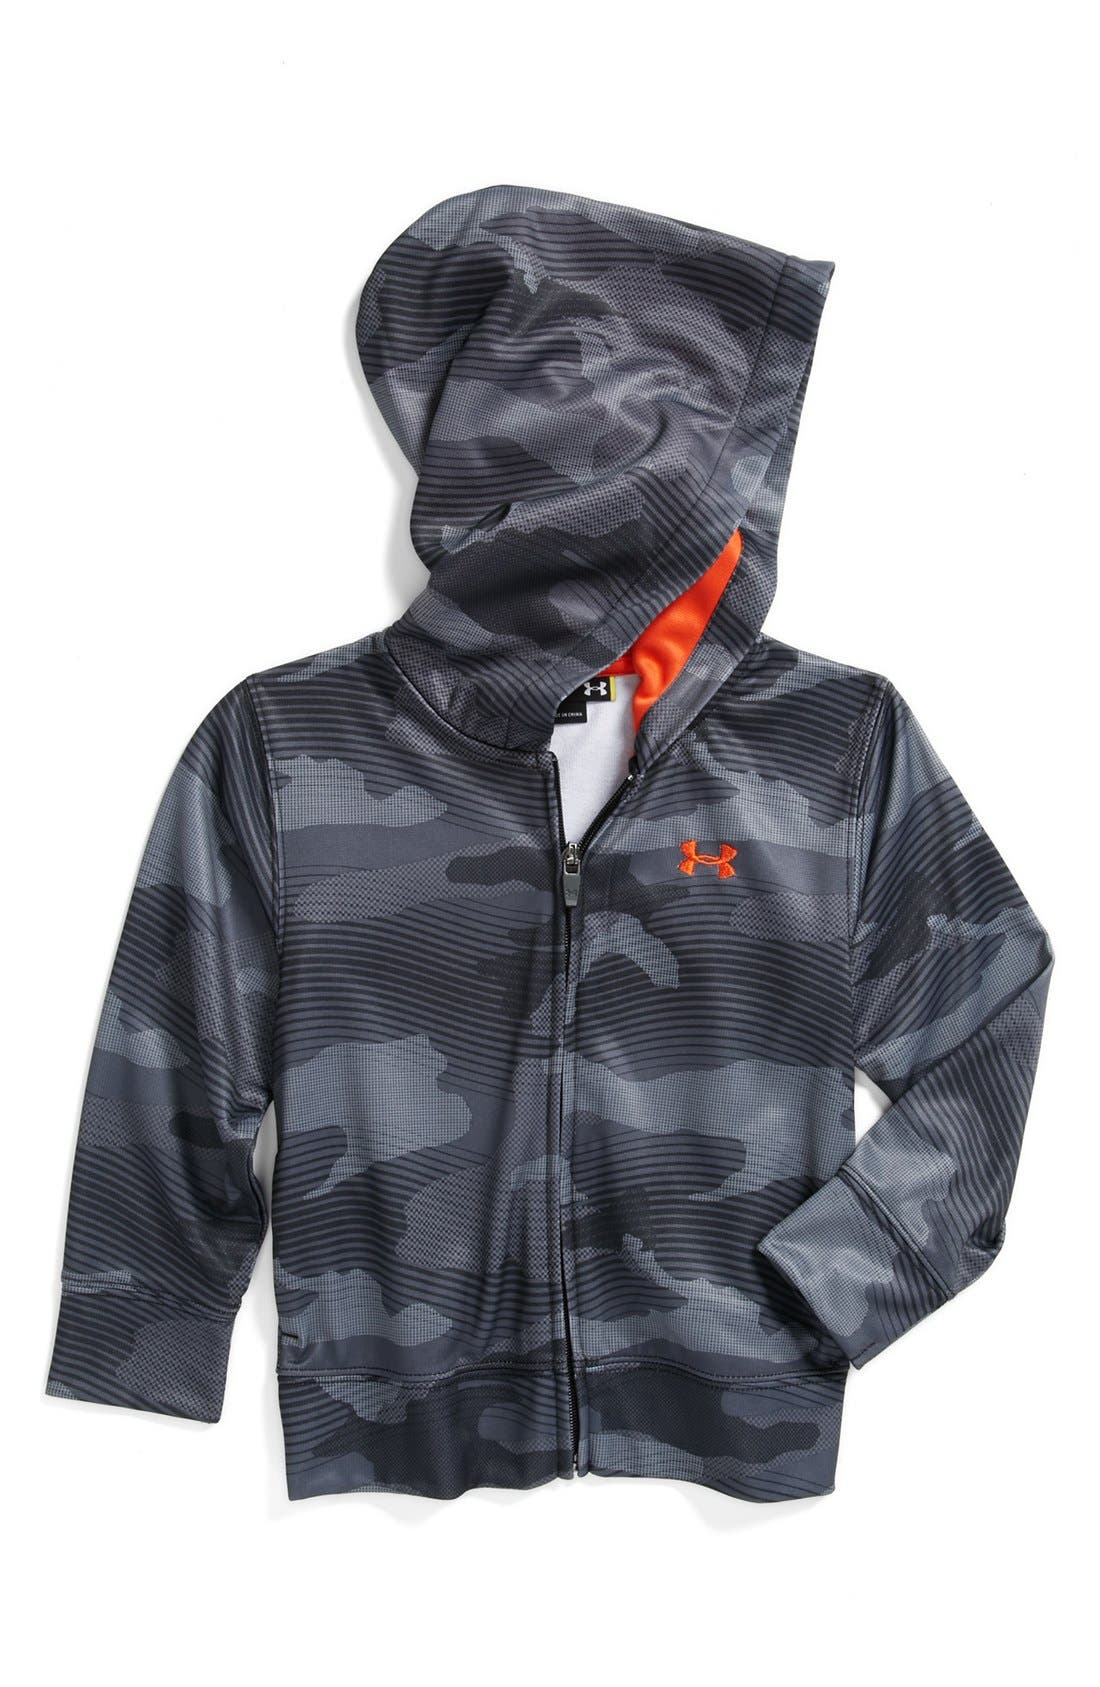 Alternate Image 1 Selected - Under Armour 'Future Camo' Hoodie (Toddler Boys)